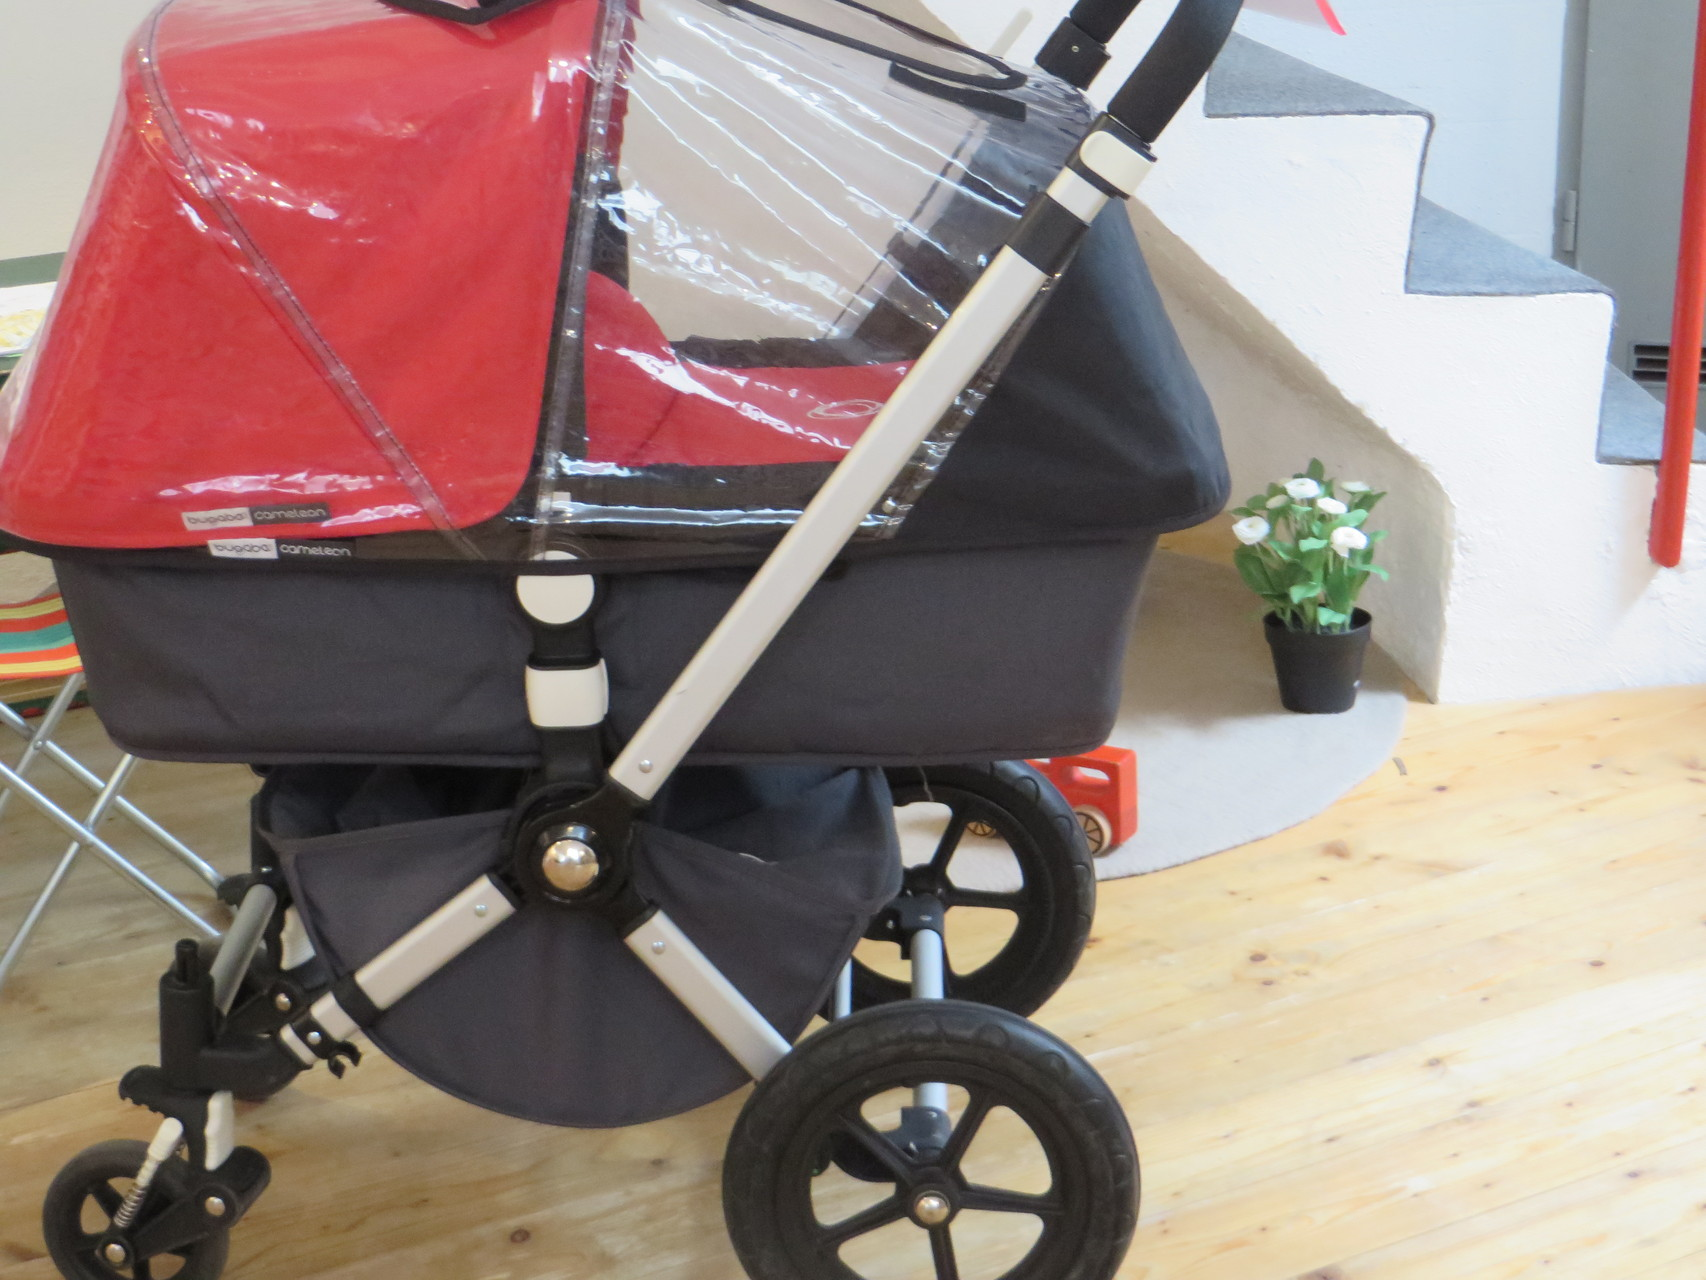 Pram/Stroller - Bugaboo Cameleon - inkl down sleeping and travel Bag - 750,- Second Hand